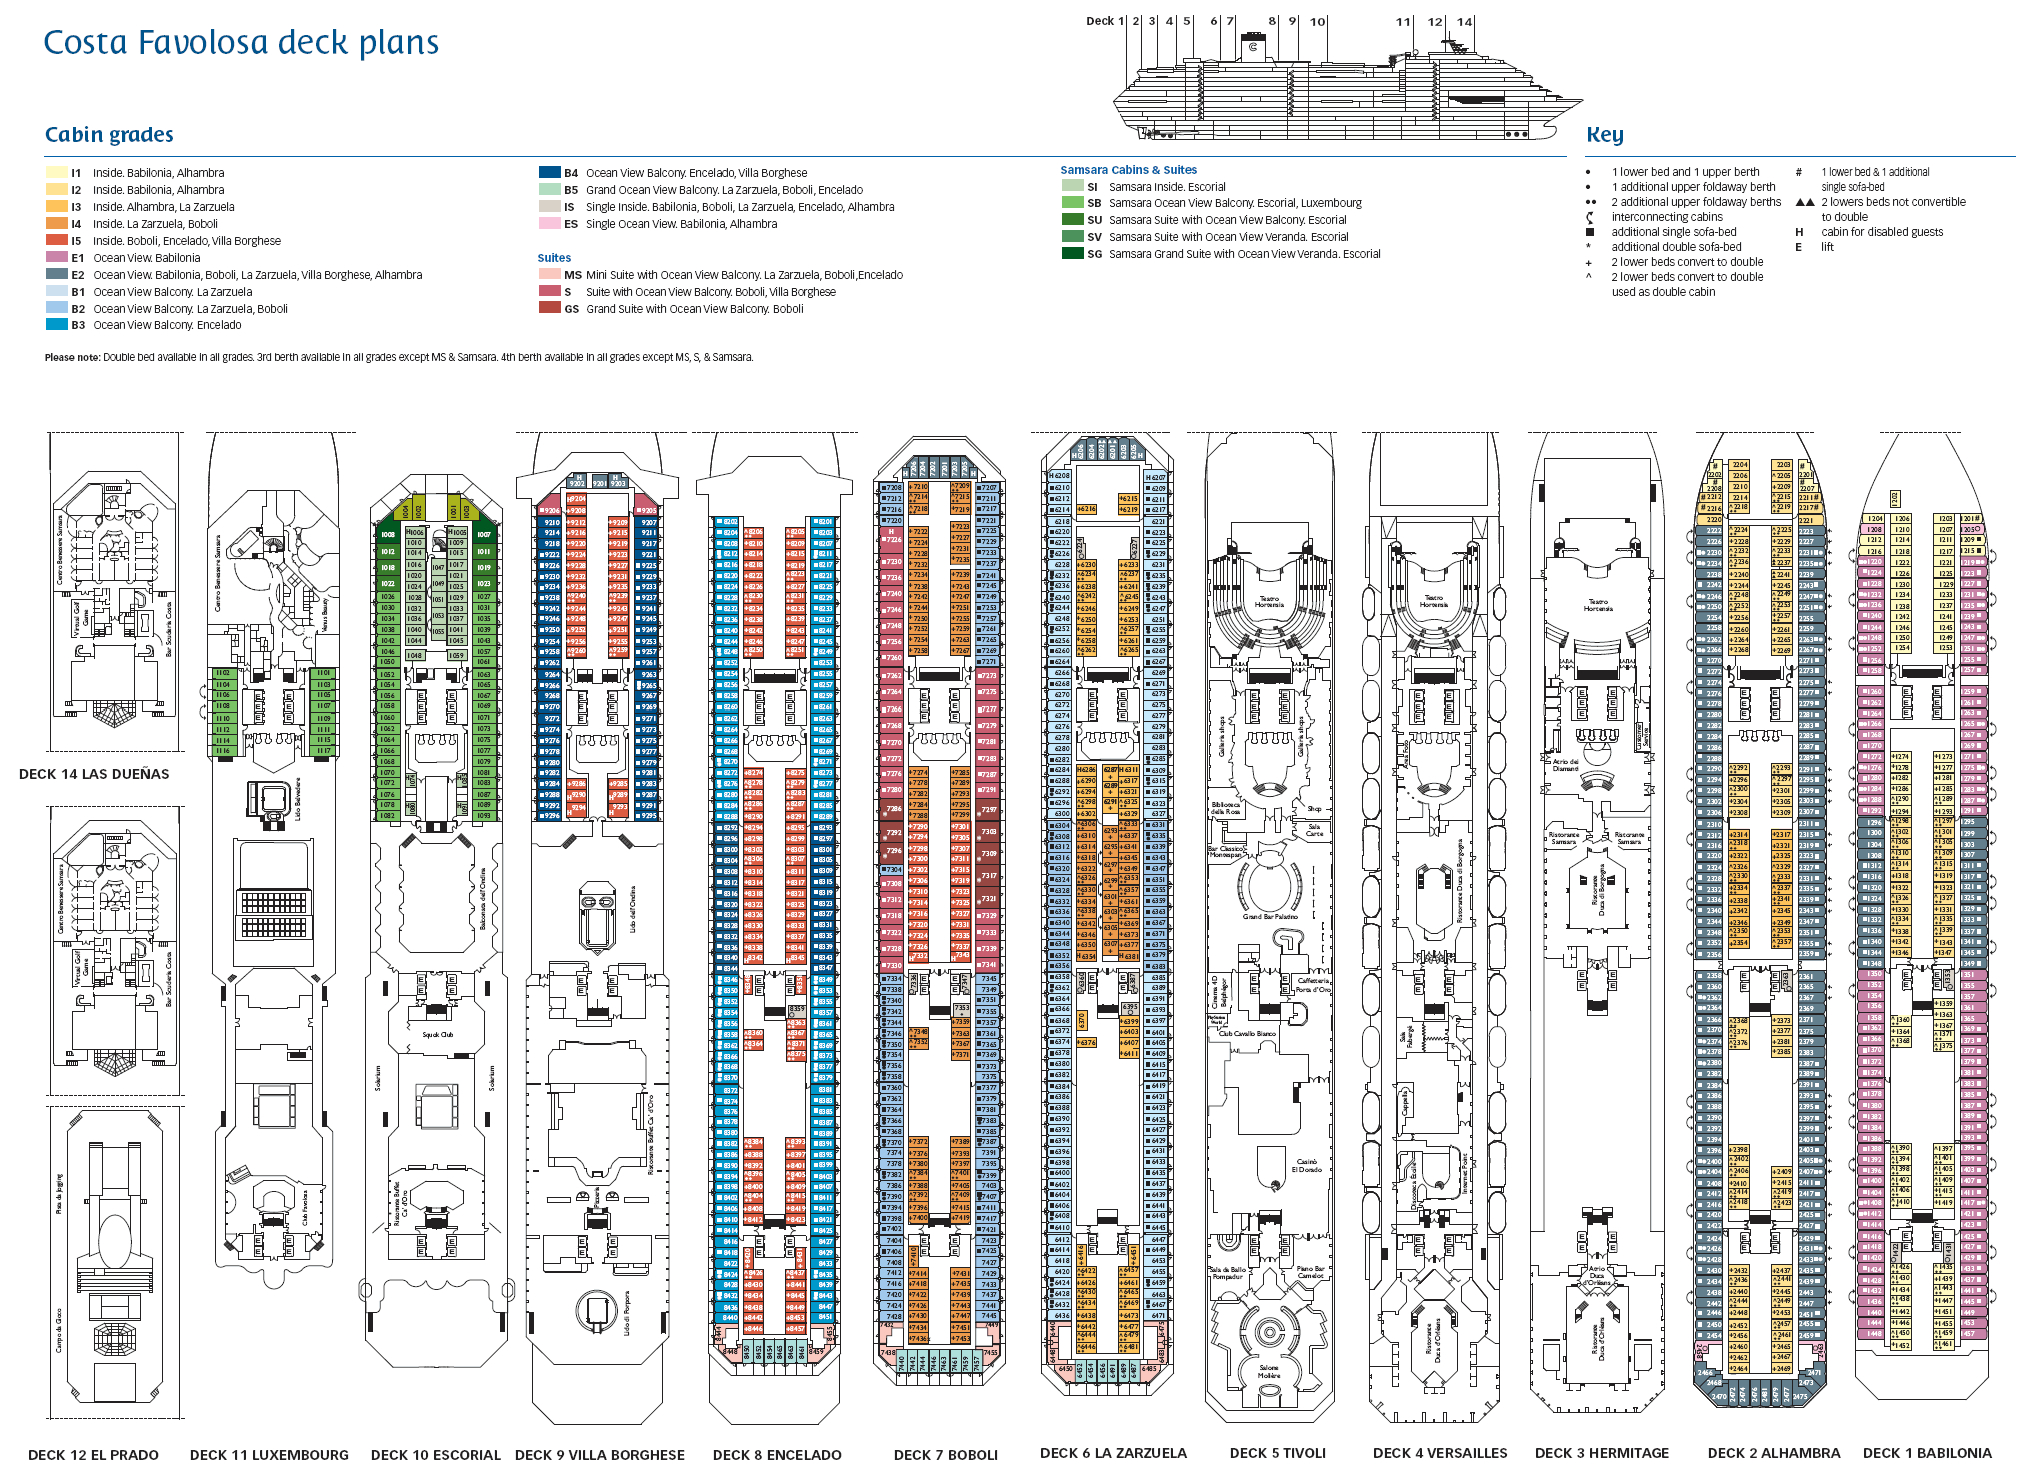 Rubina costa luminosa deck plans pictures to pin on for Deckplan costa diadema